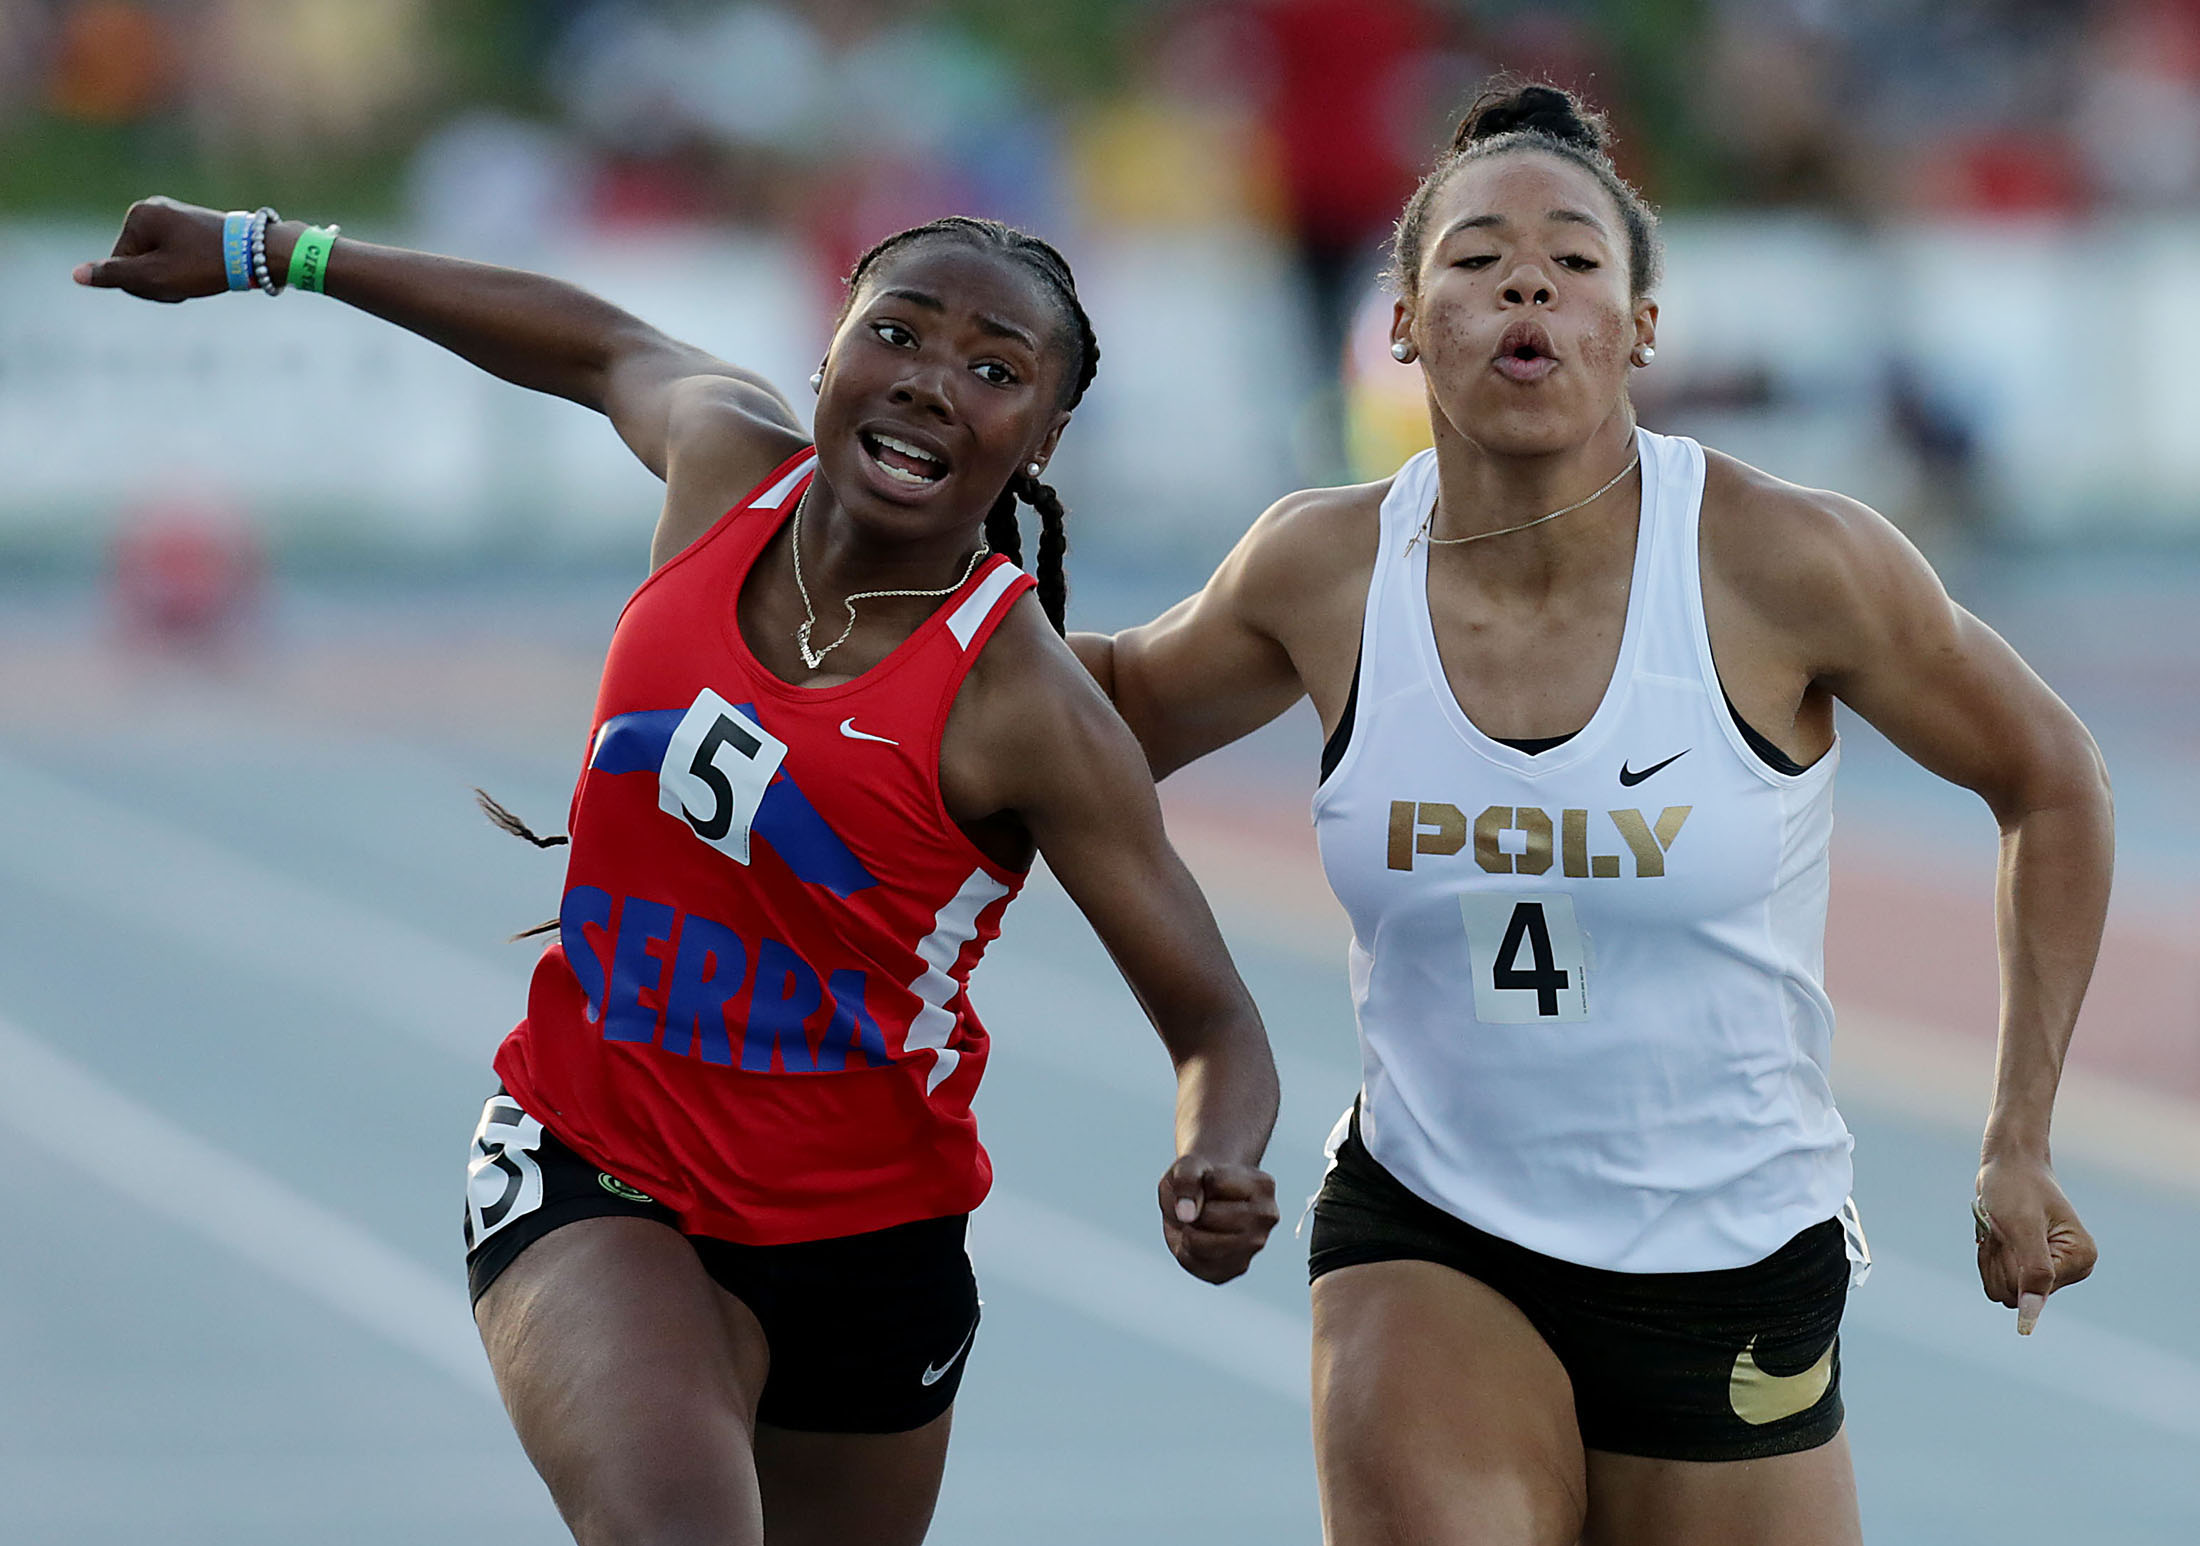 La Sierra�s Mariah Allain and Long Beach Poly�s Ariyonna Augustine compete in the 100 yard dash during the 100th annal CIF State Track and Field Championships at Buchanan High Saturday in Clovis, Calif. June 2, 2018.